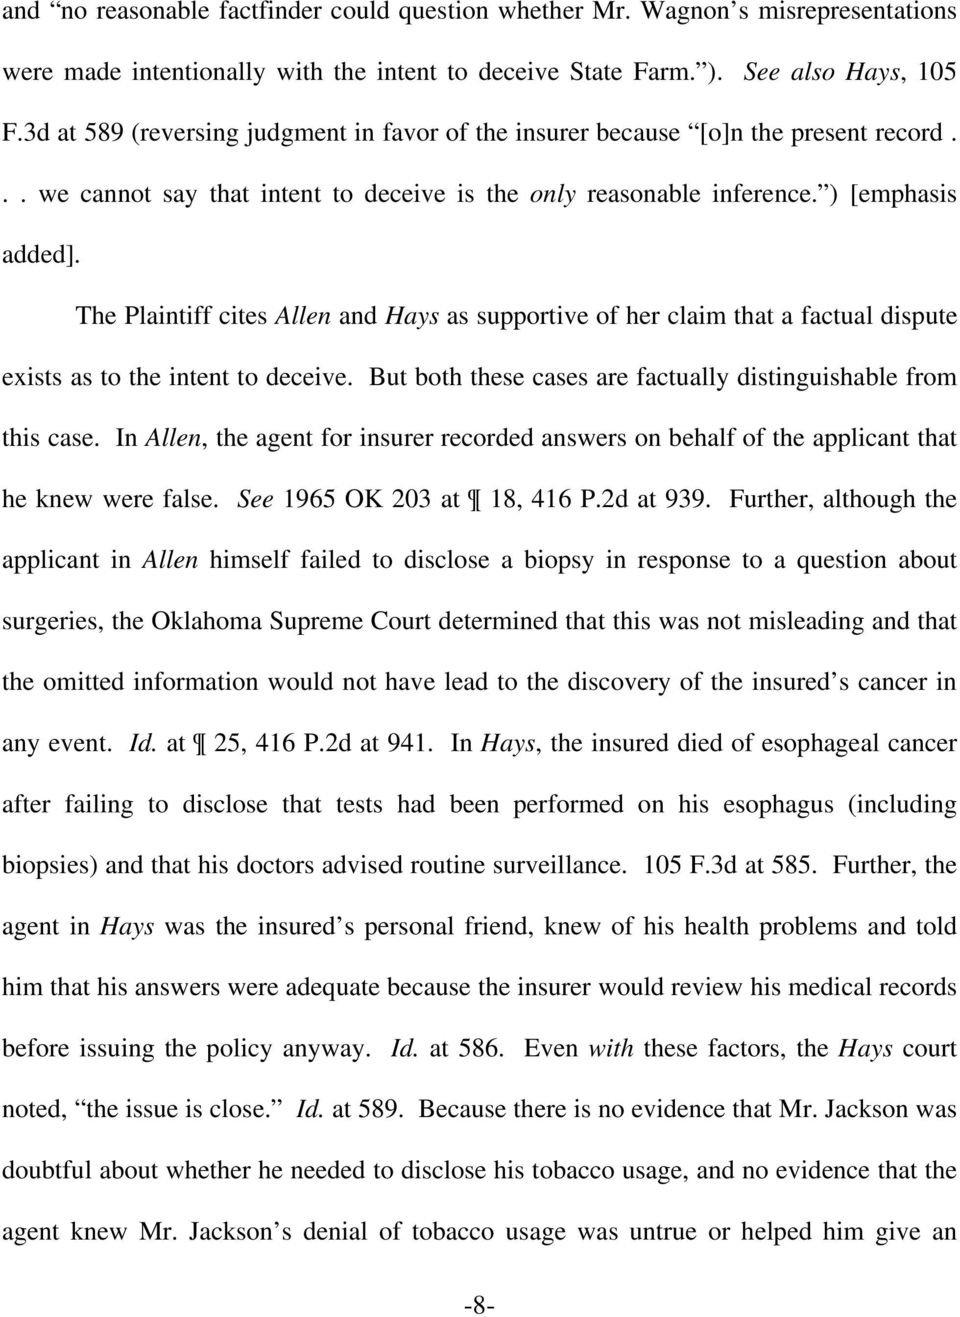 The Plaintiff cites Allen and Hays as supportive of her claim that a factual dispute exists as to the intent to deceive. But both these cases are factually distinguishable from this case.